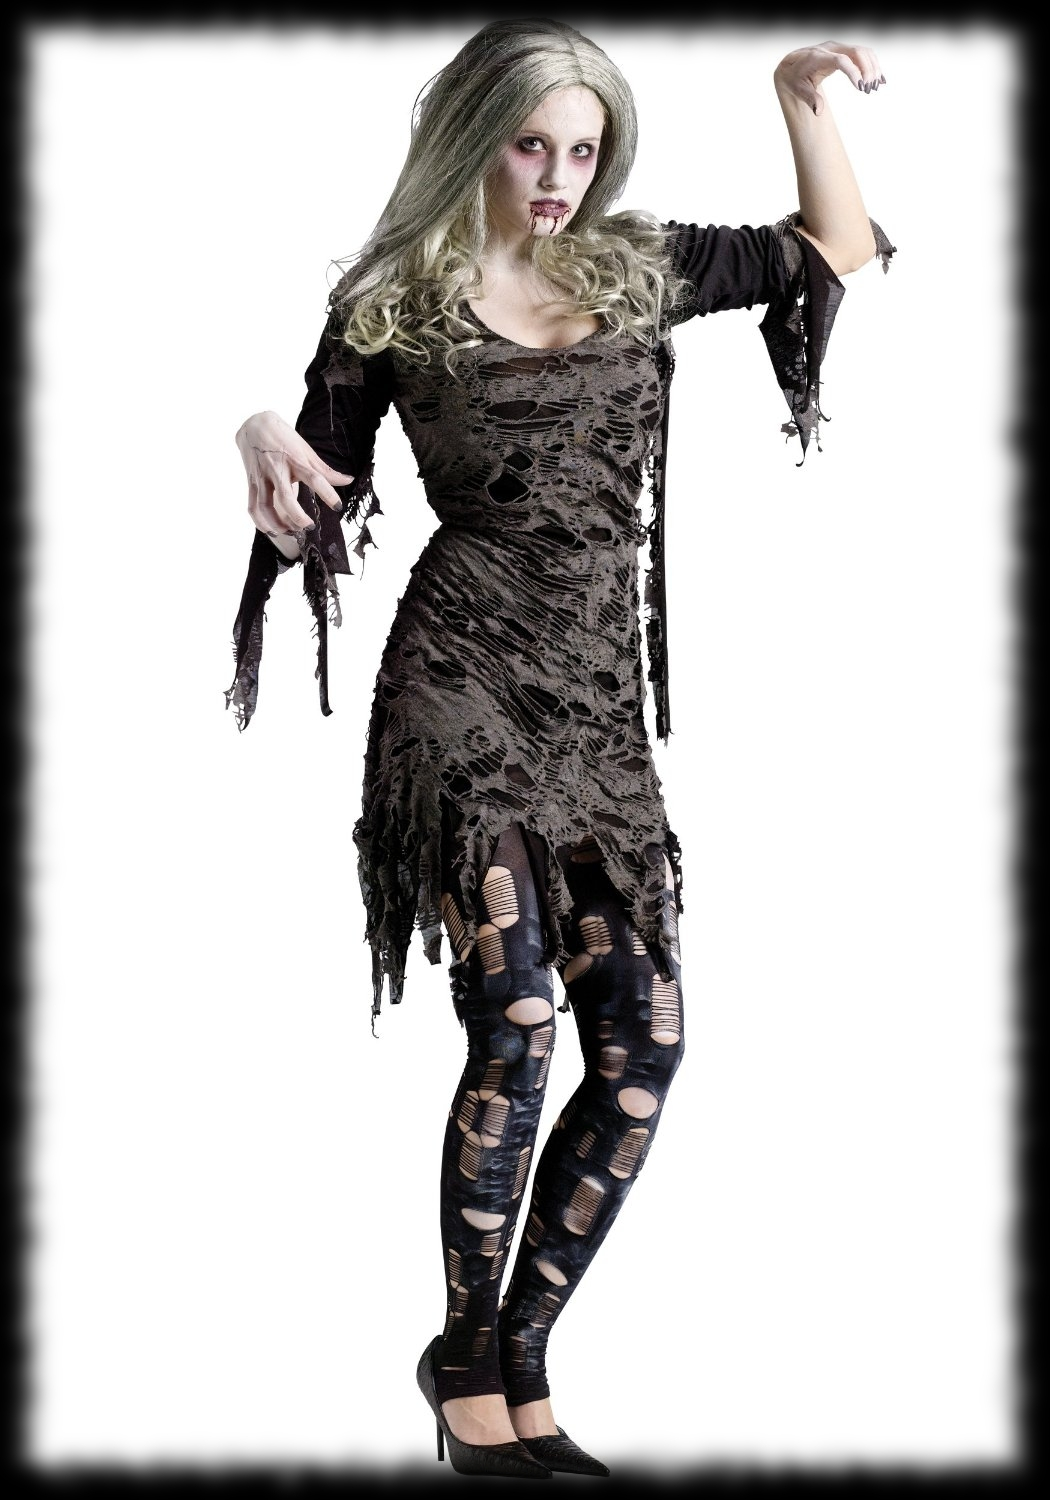 Girl Zombie Halloween Costume For Sale